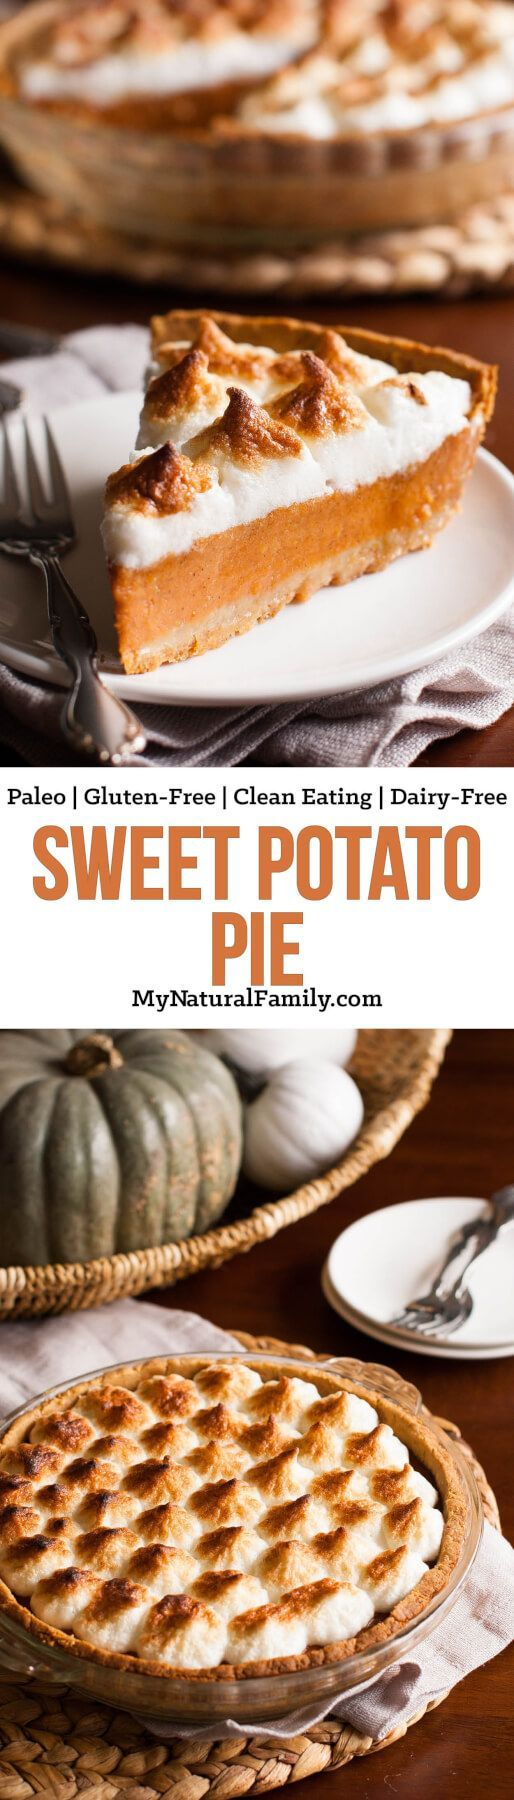 This sweet potato pie recipe is so good! The crust is to die for! I'm going to make this all the time now.